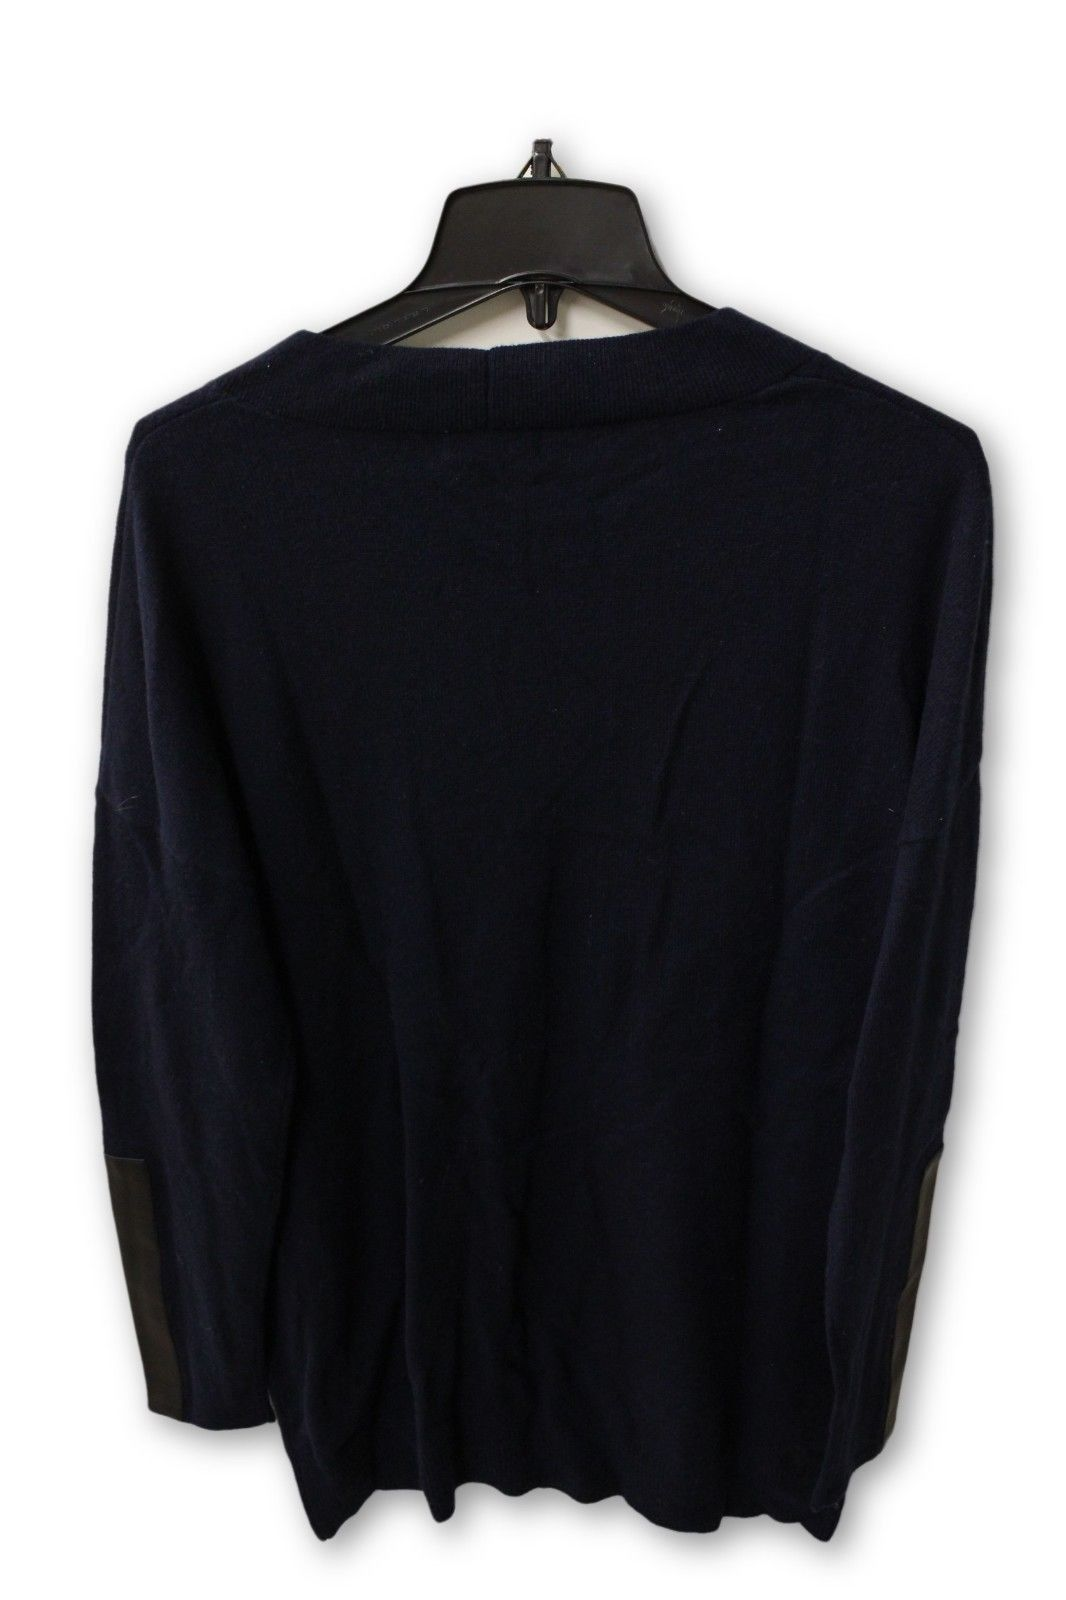 C by Bloomingdale's Women's Cashmere - Navy V Neck Sweater L NWT